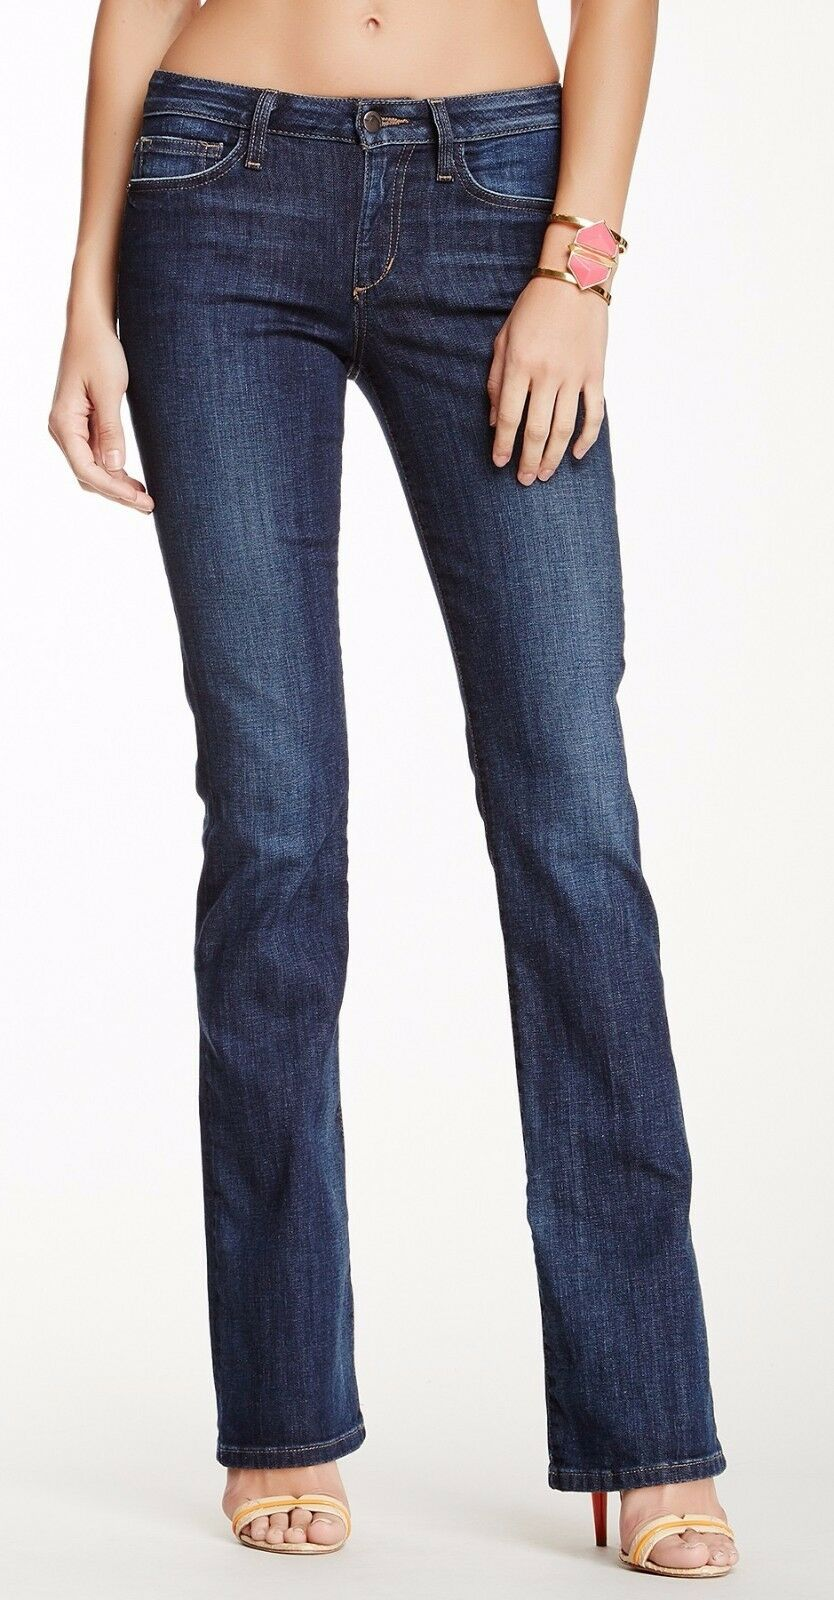 Nwt Joe's The Honey Stretch Bootcut Jeans Curvy Denim Pants Monroe CRLMON5730 26